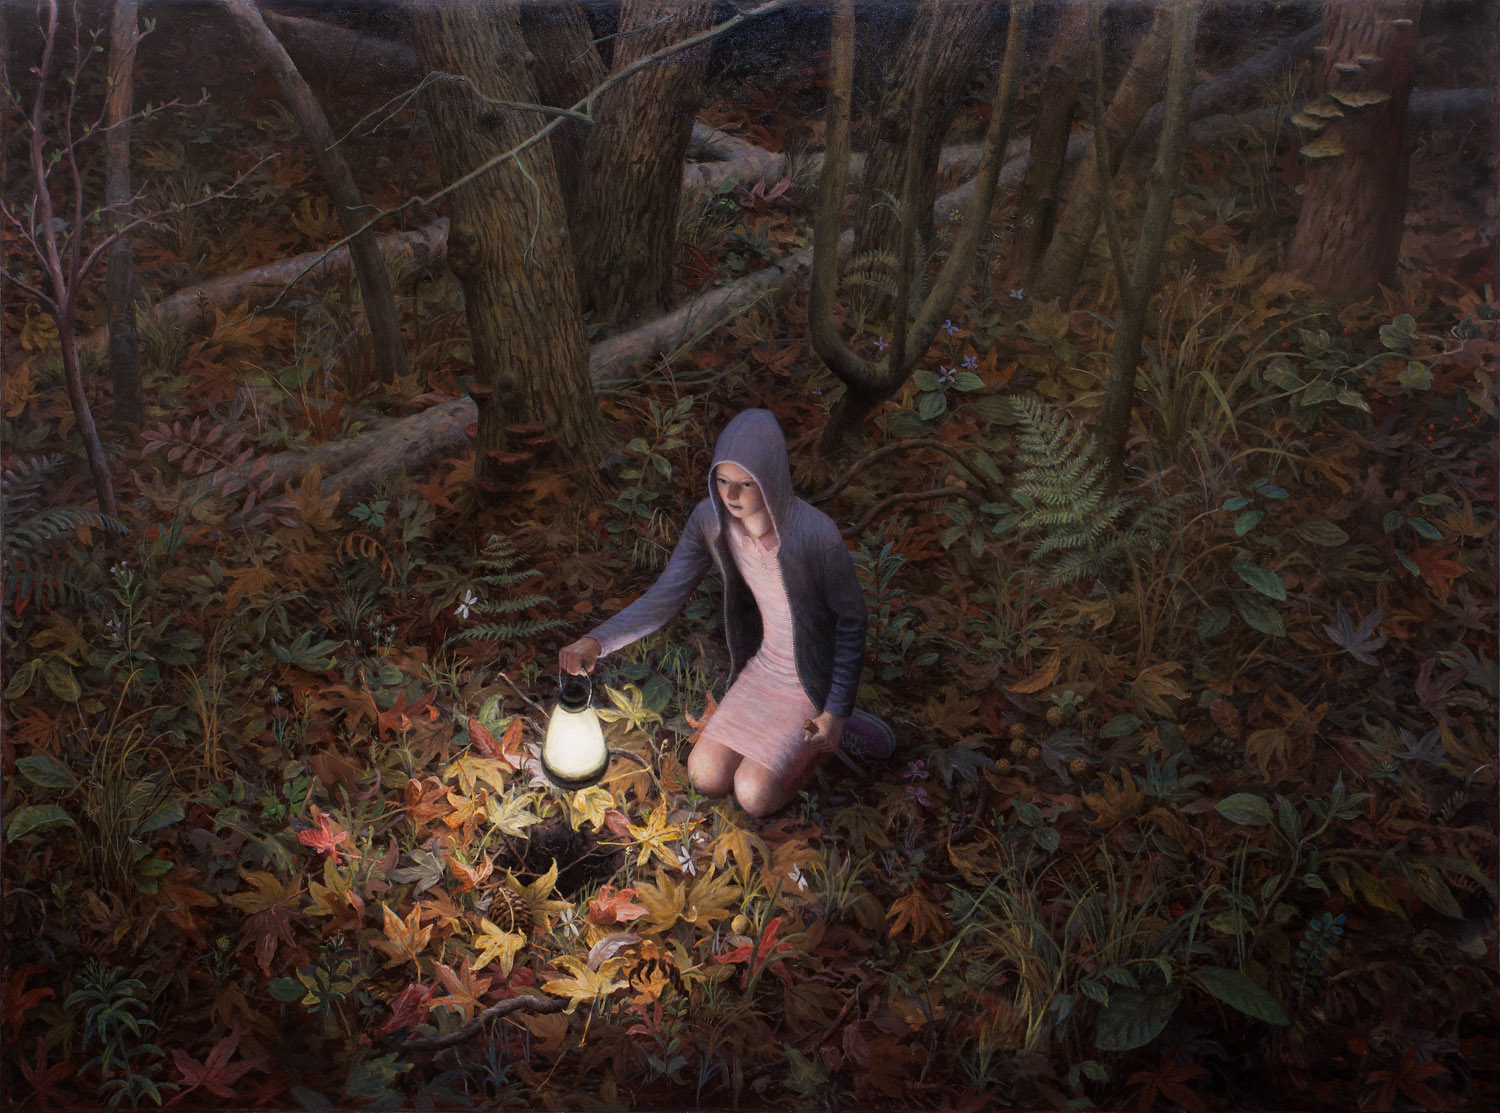 The Well , oil on canvas, 67 x 83 in / 170 x 211 cm, 2010